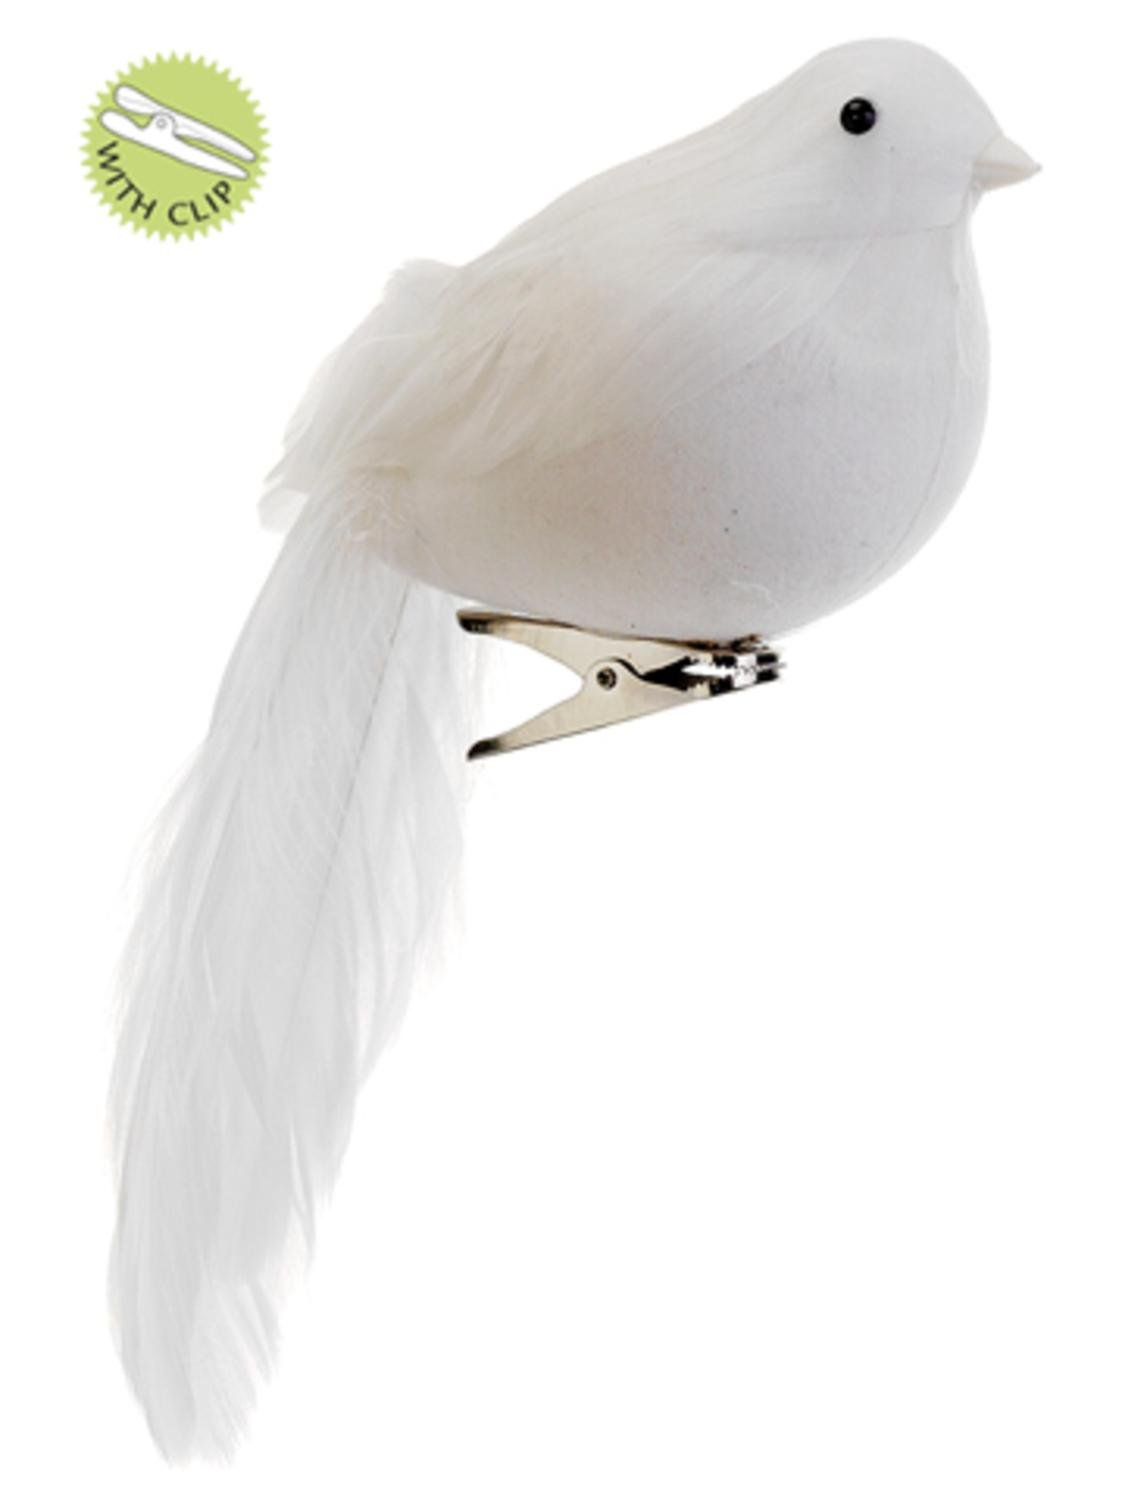 amazoncom 7 white feathered long tail clip on bird christmas ornament home kitchen - Bird Christmas Decorations